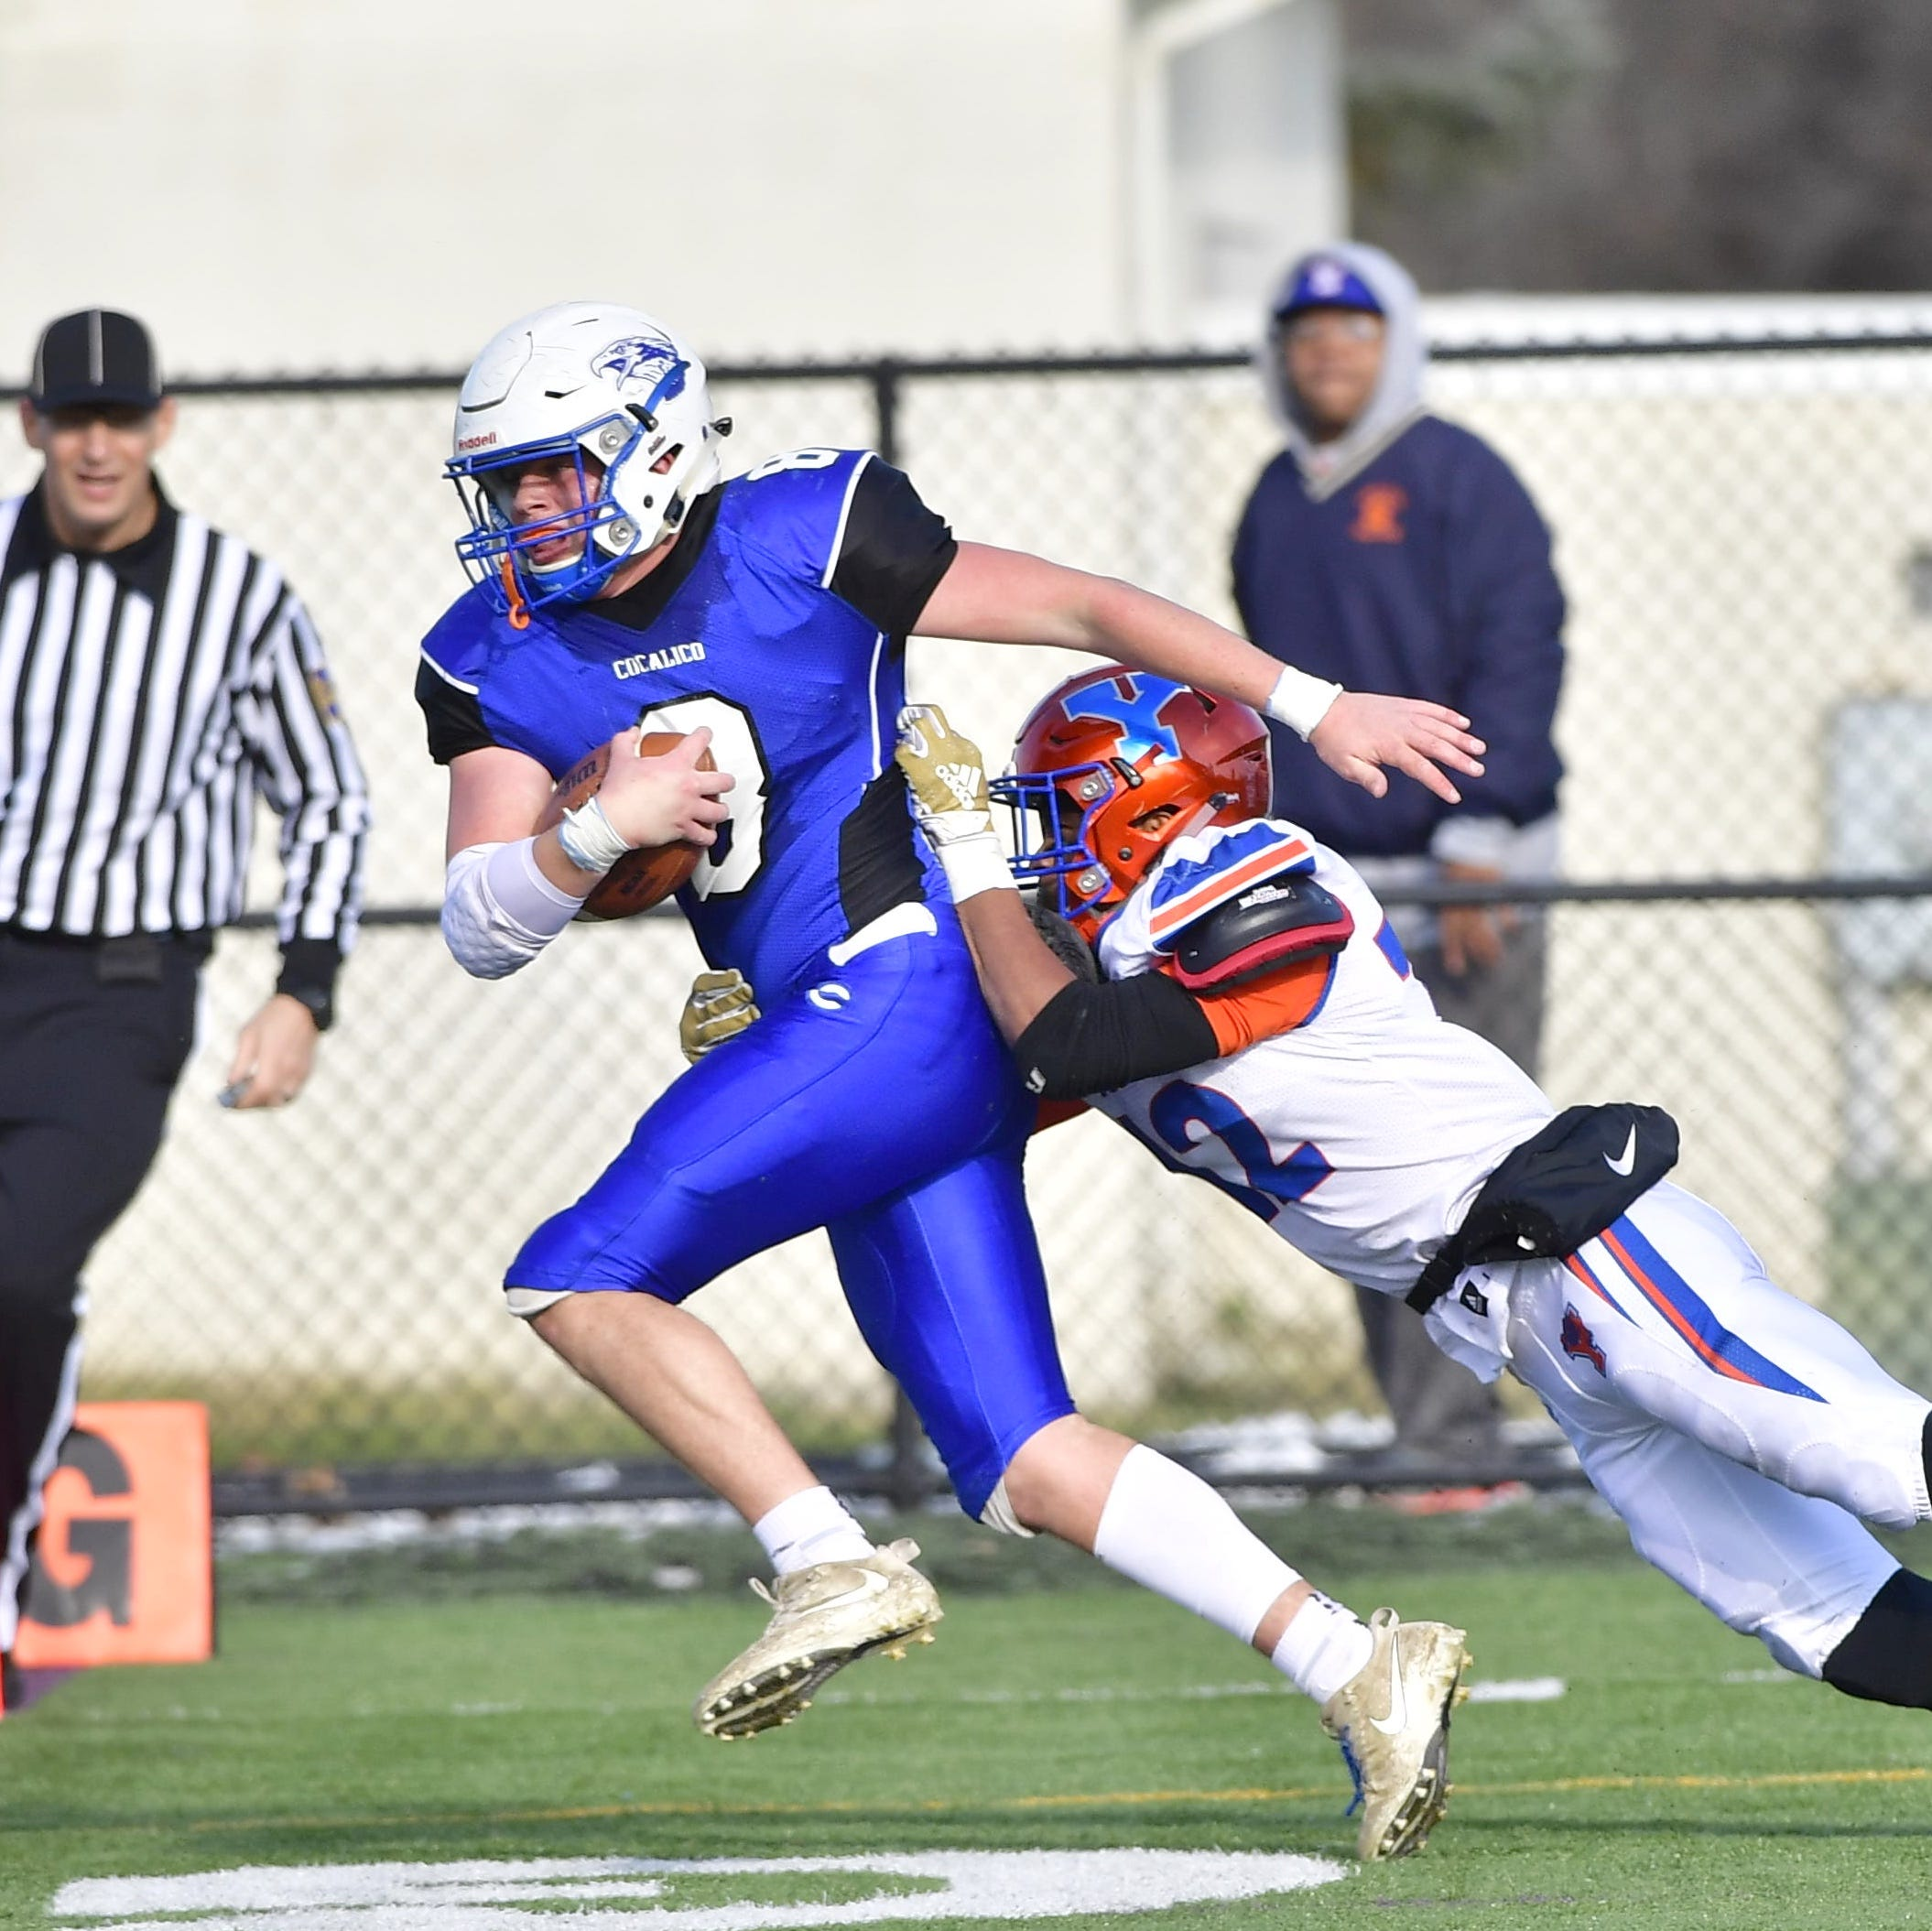 Cocalico rules second half to end York High's outstanding season in District 3 semifinals